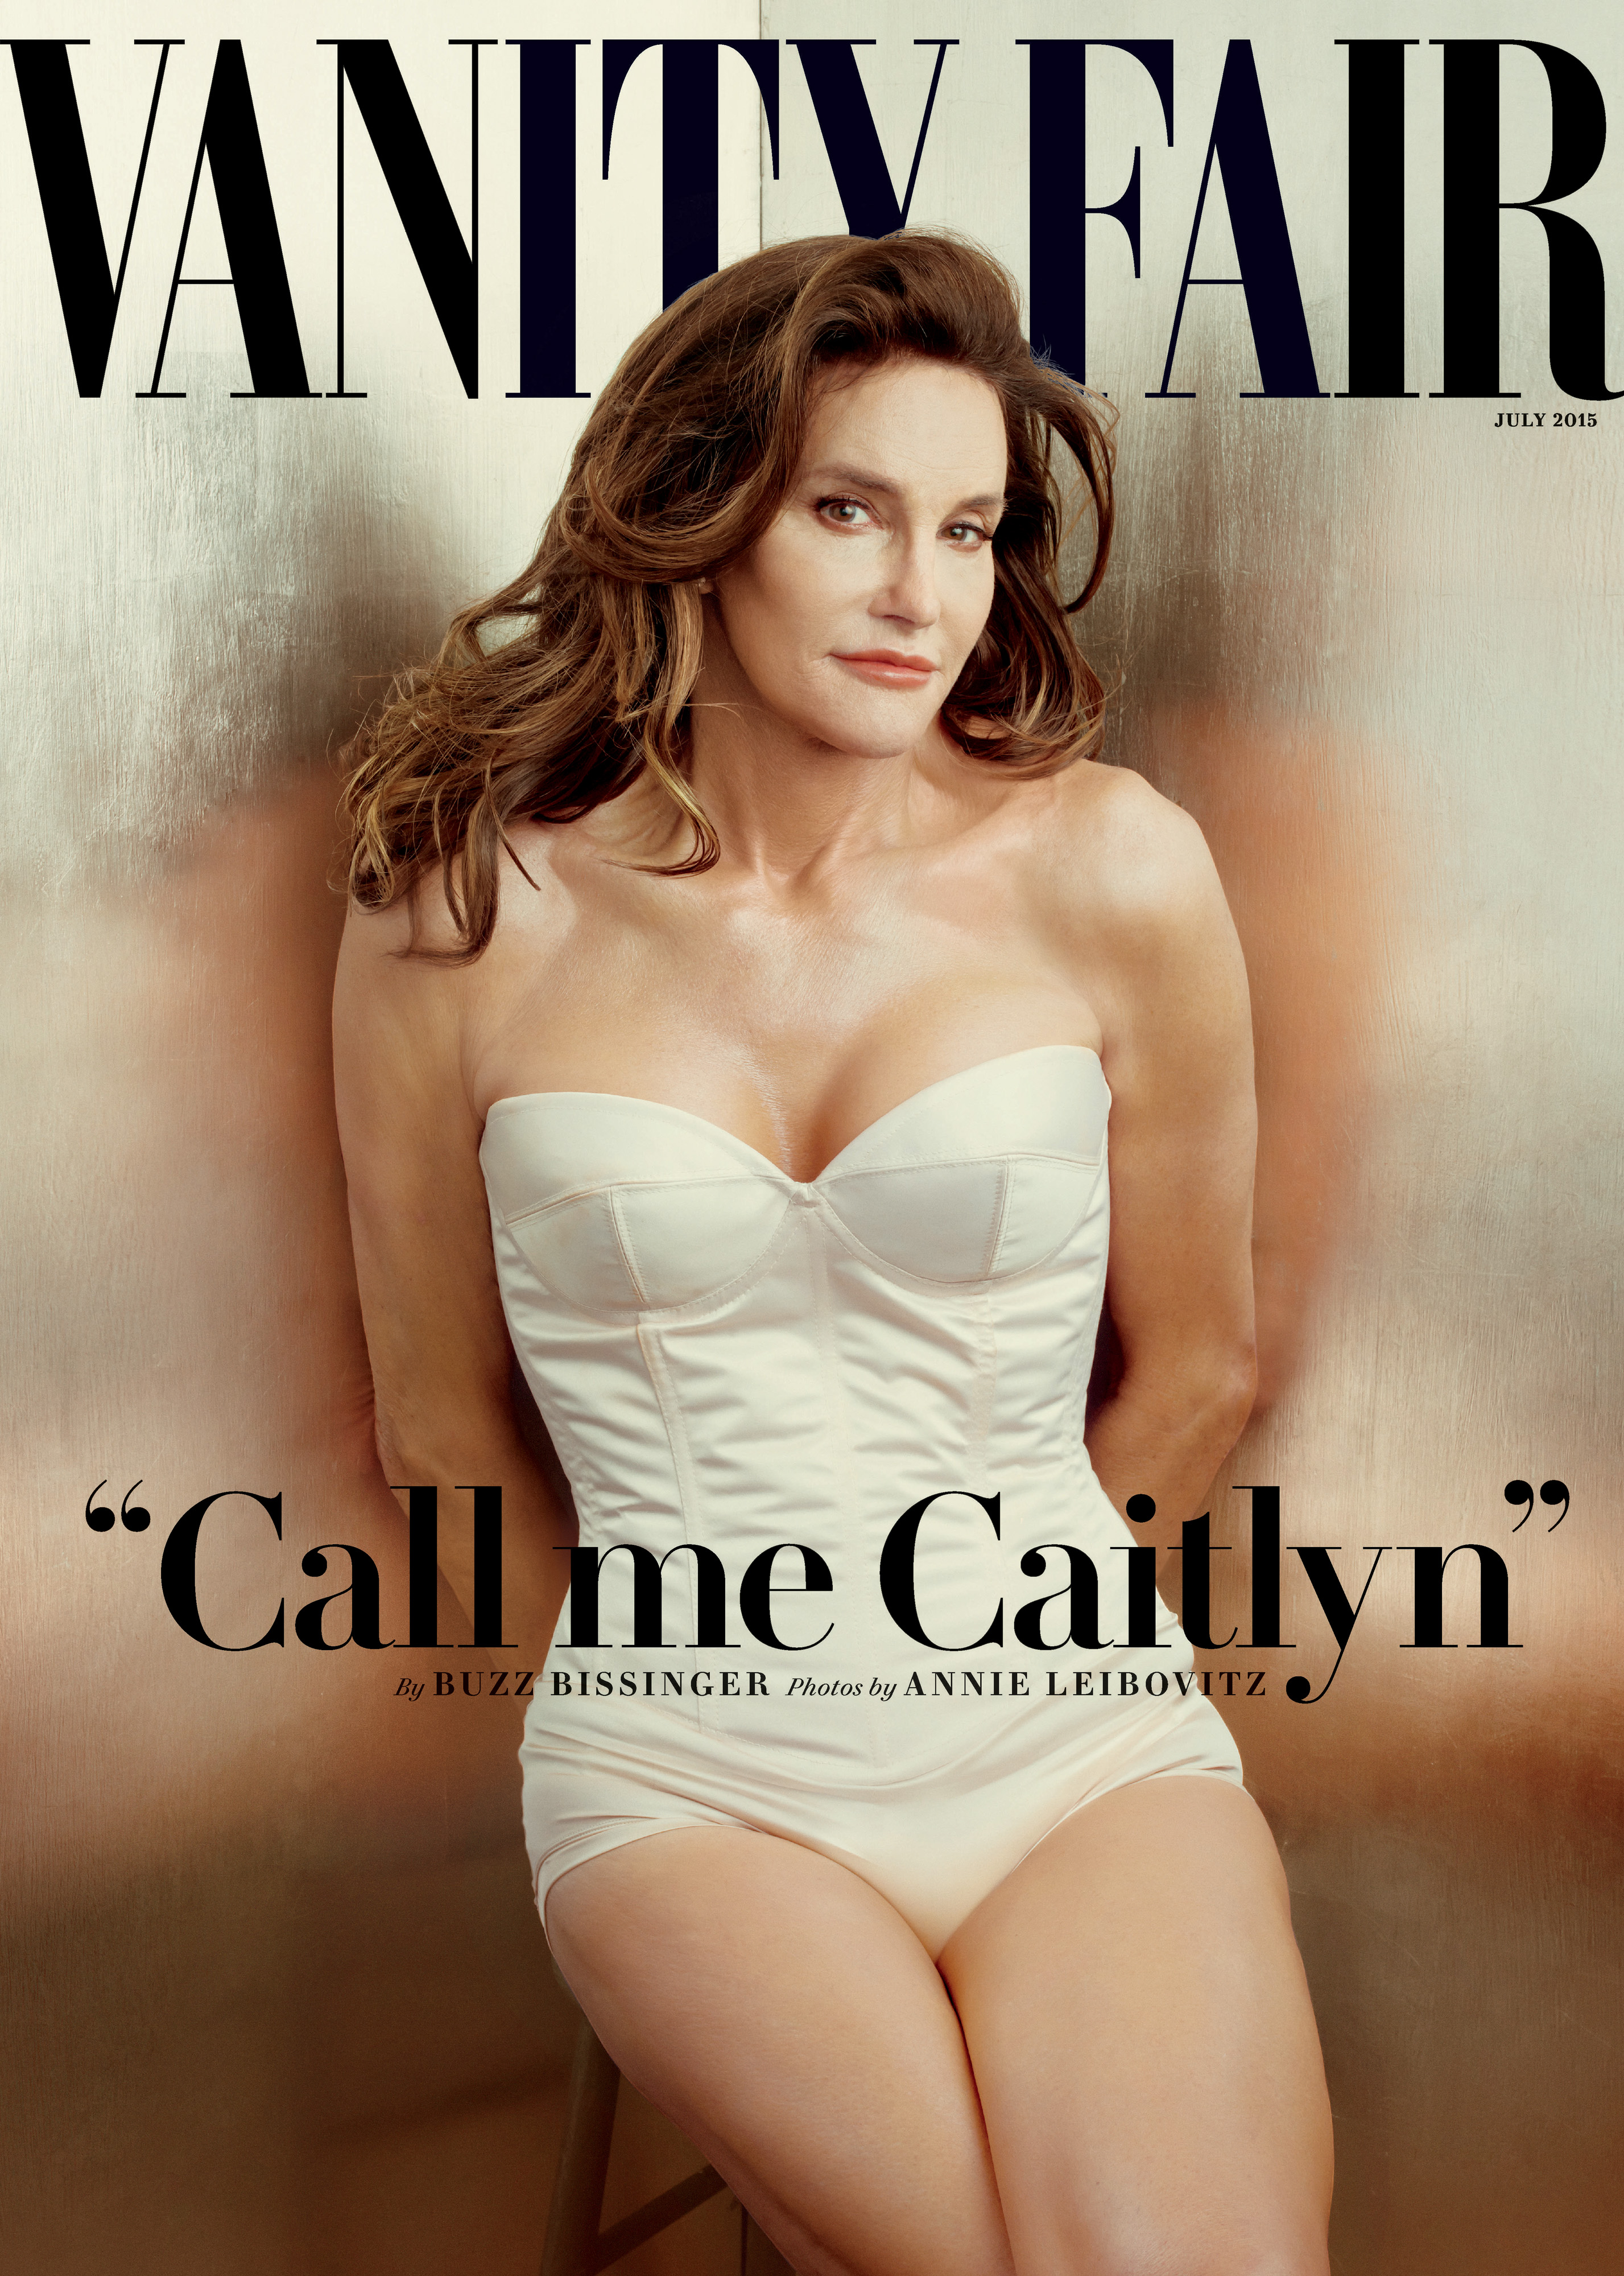 Caitlyn Jenner on the cover of Vanity Fair's July 2015 issue.